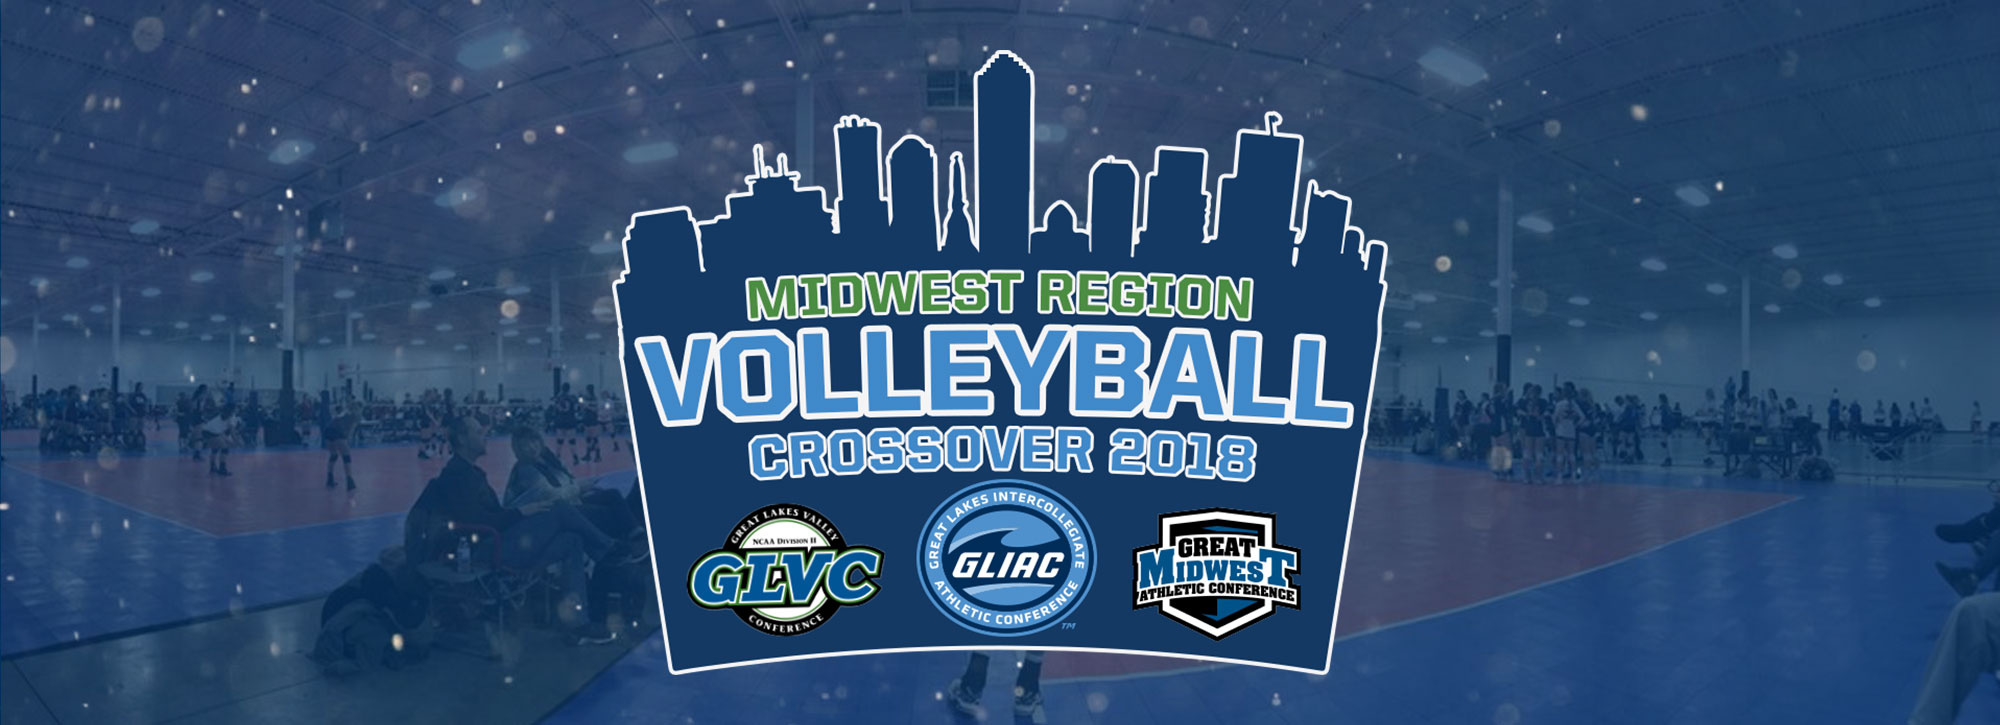 2018 Midwest Region Volleyball Crossover Begins Friday in Indianapolis